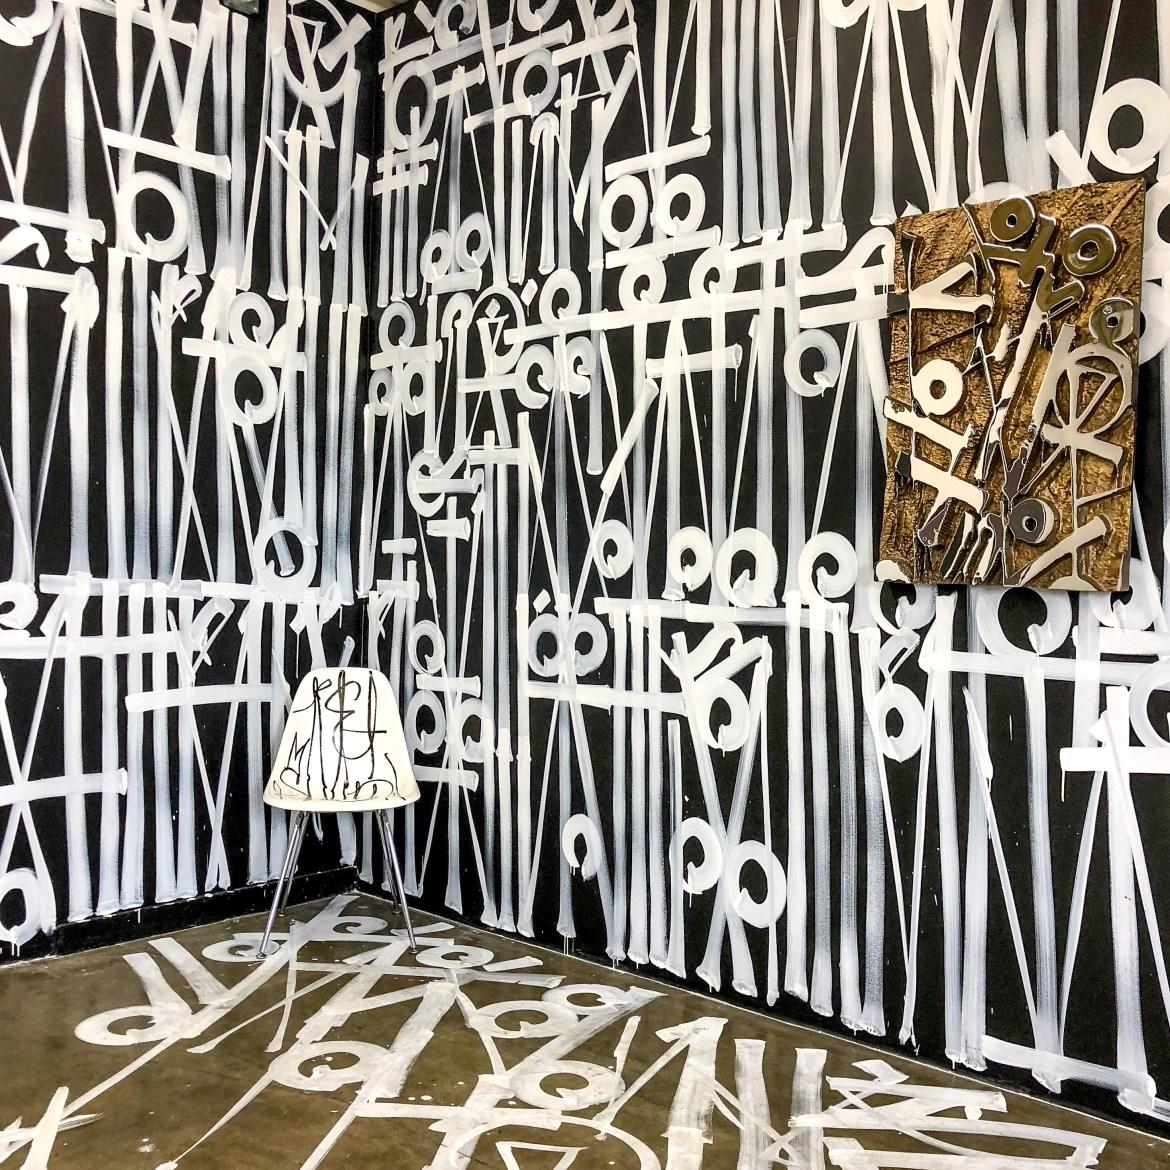 RETNA Beyond The Streets Los Angeles